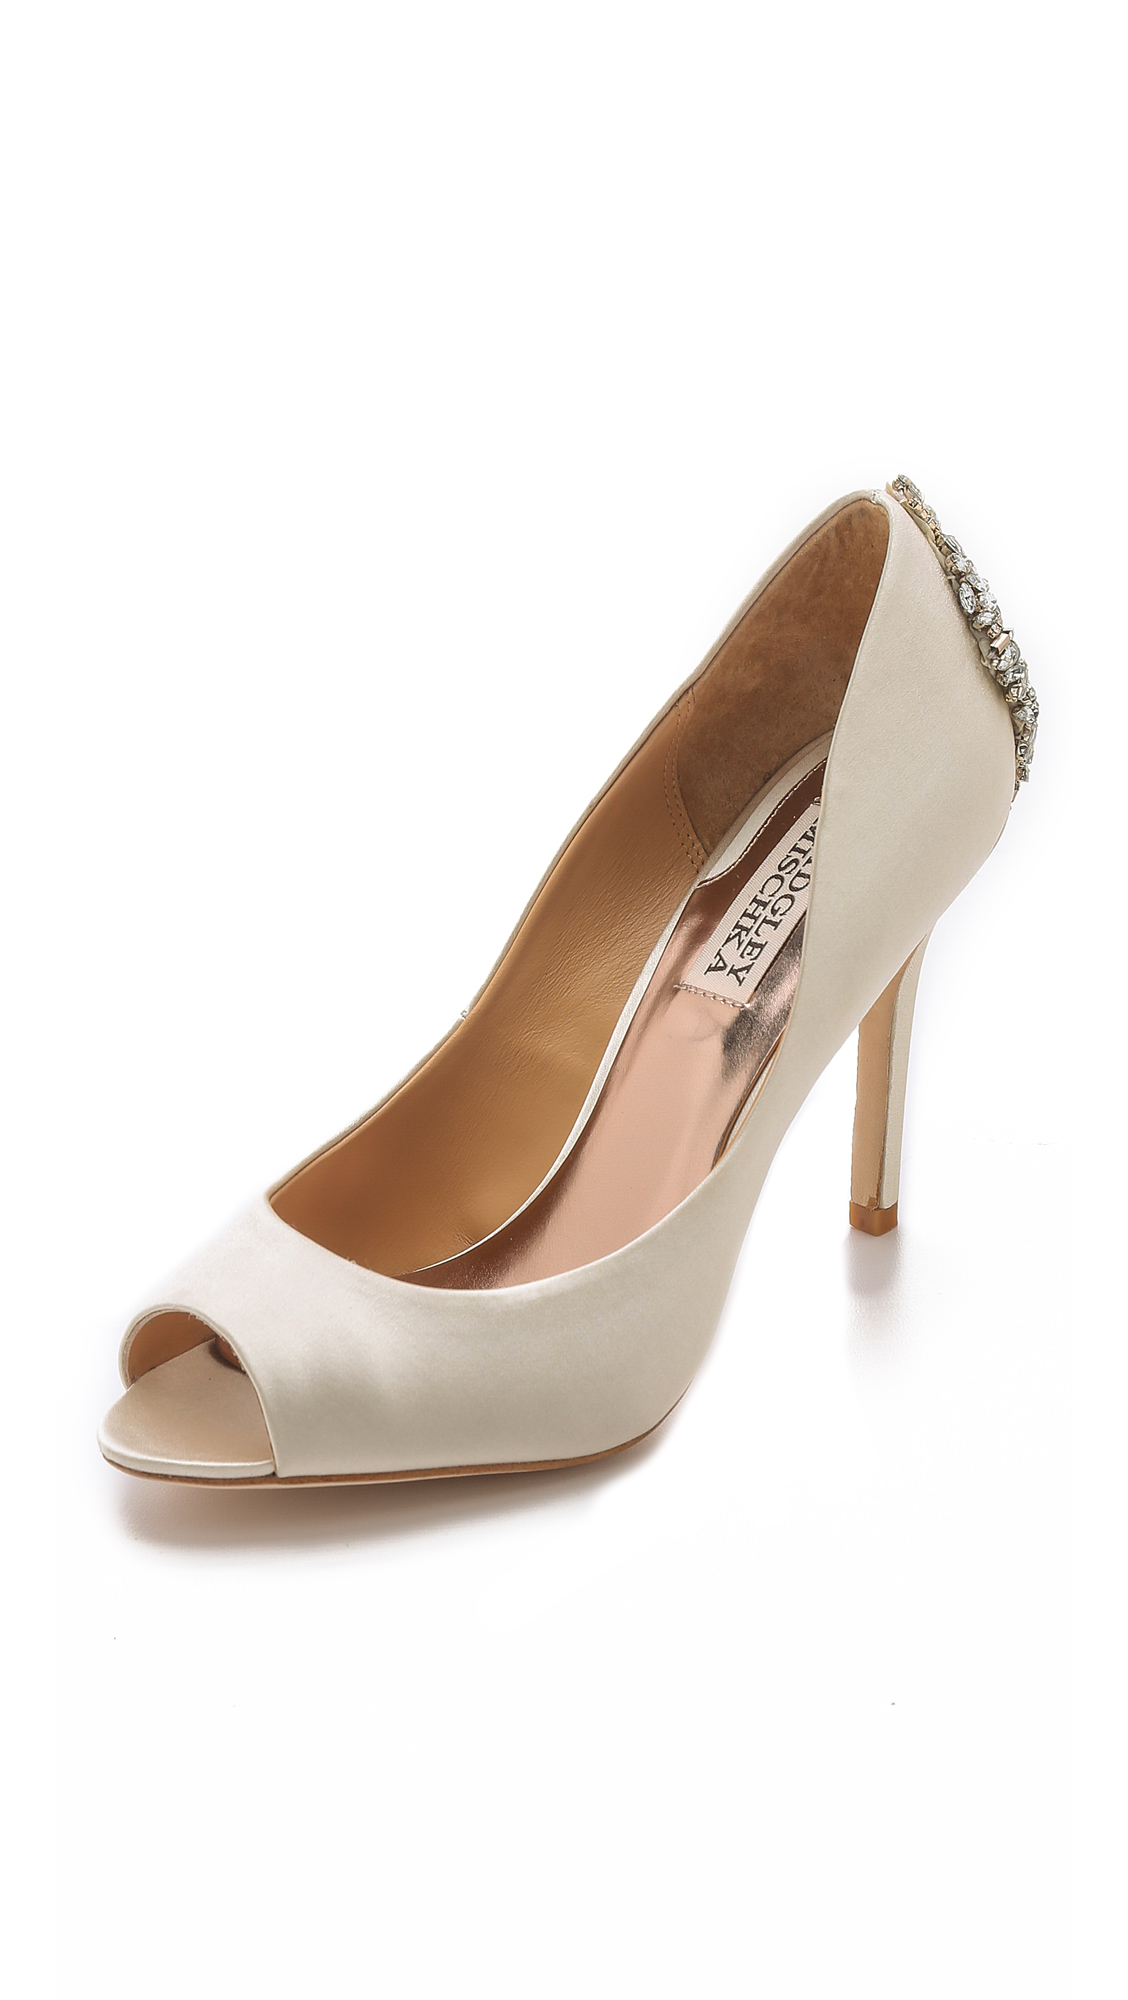 83db1520105 Badgley Mischka Nilla Peep-Toe Evening Pumps Women S Shoes In Ivory ...